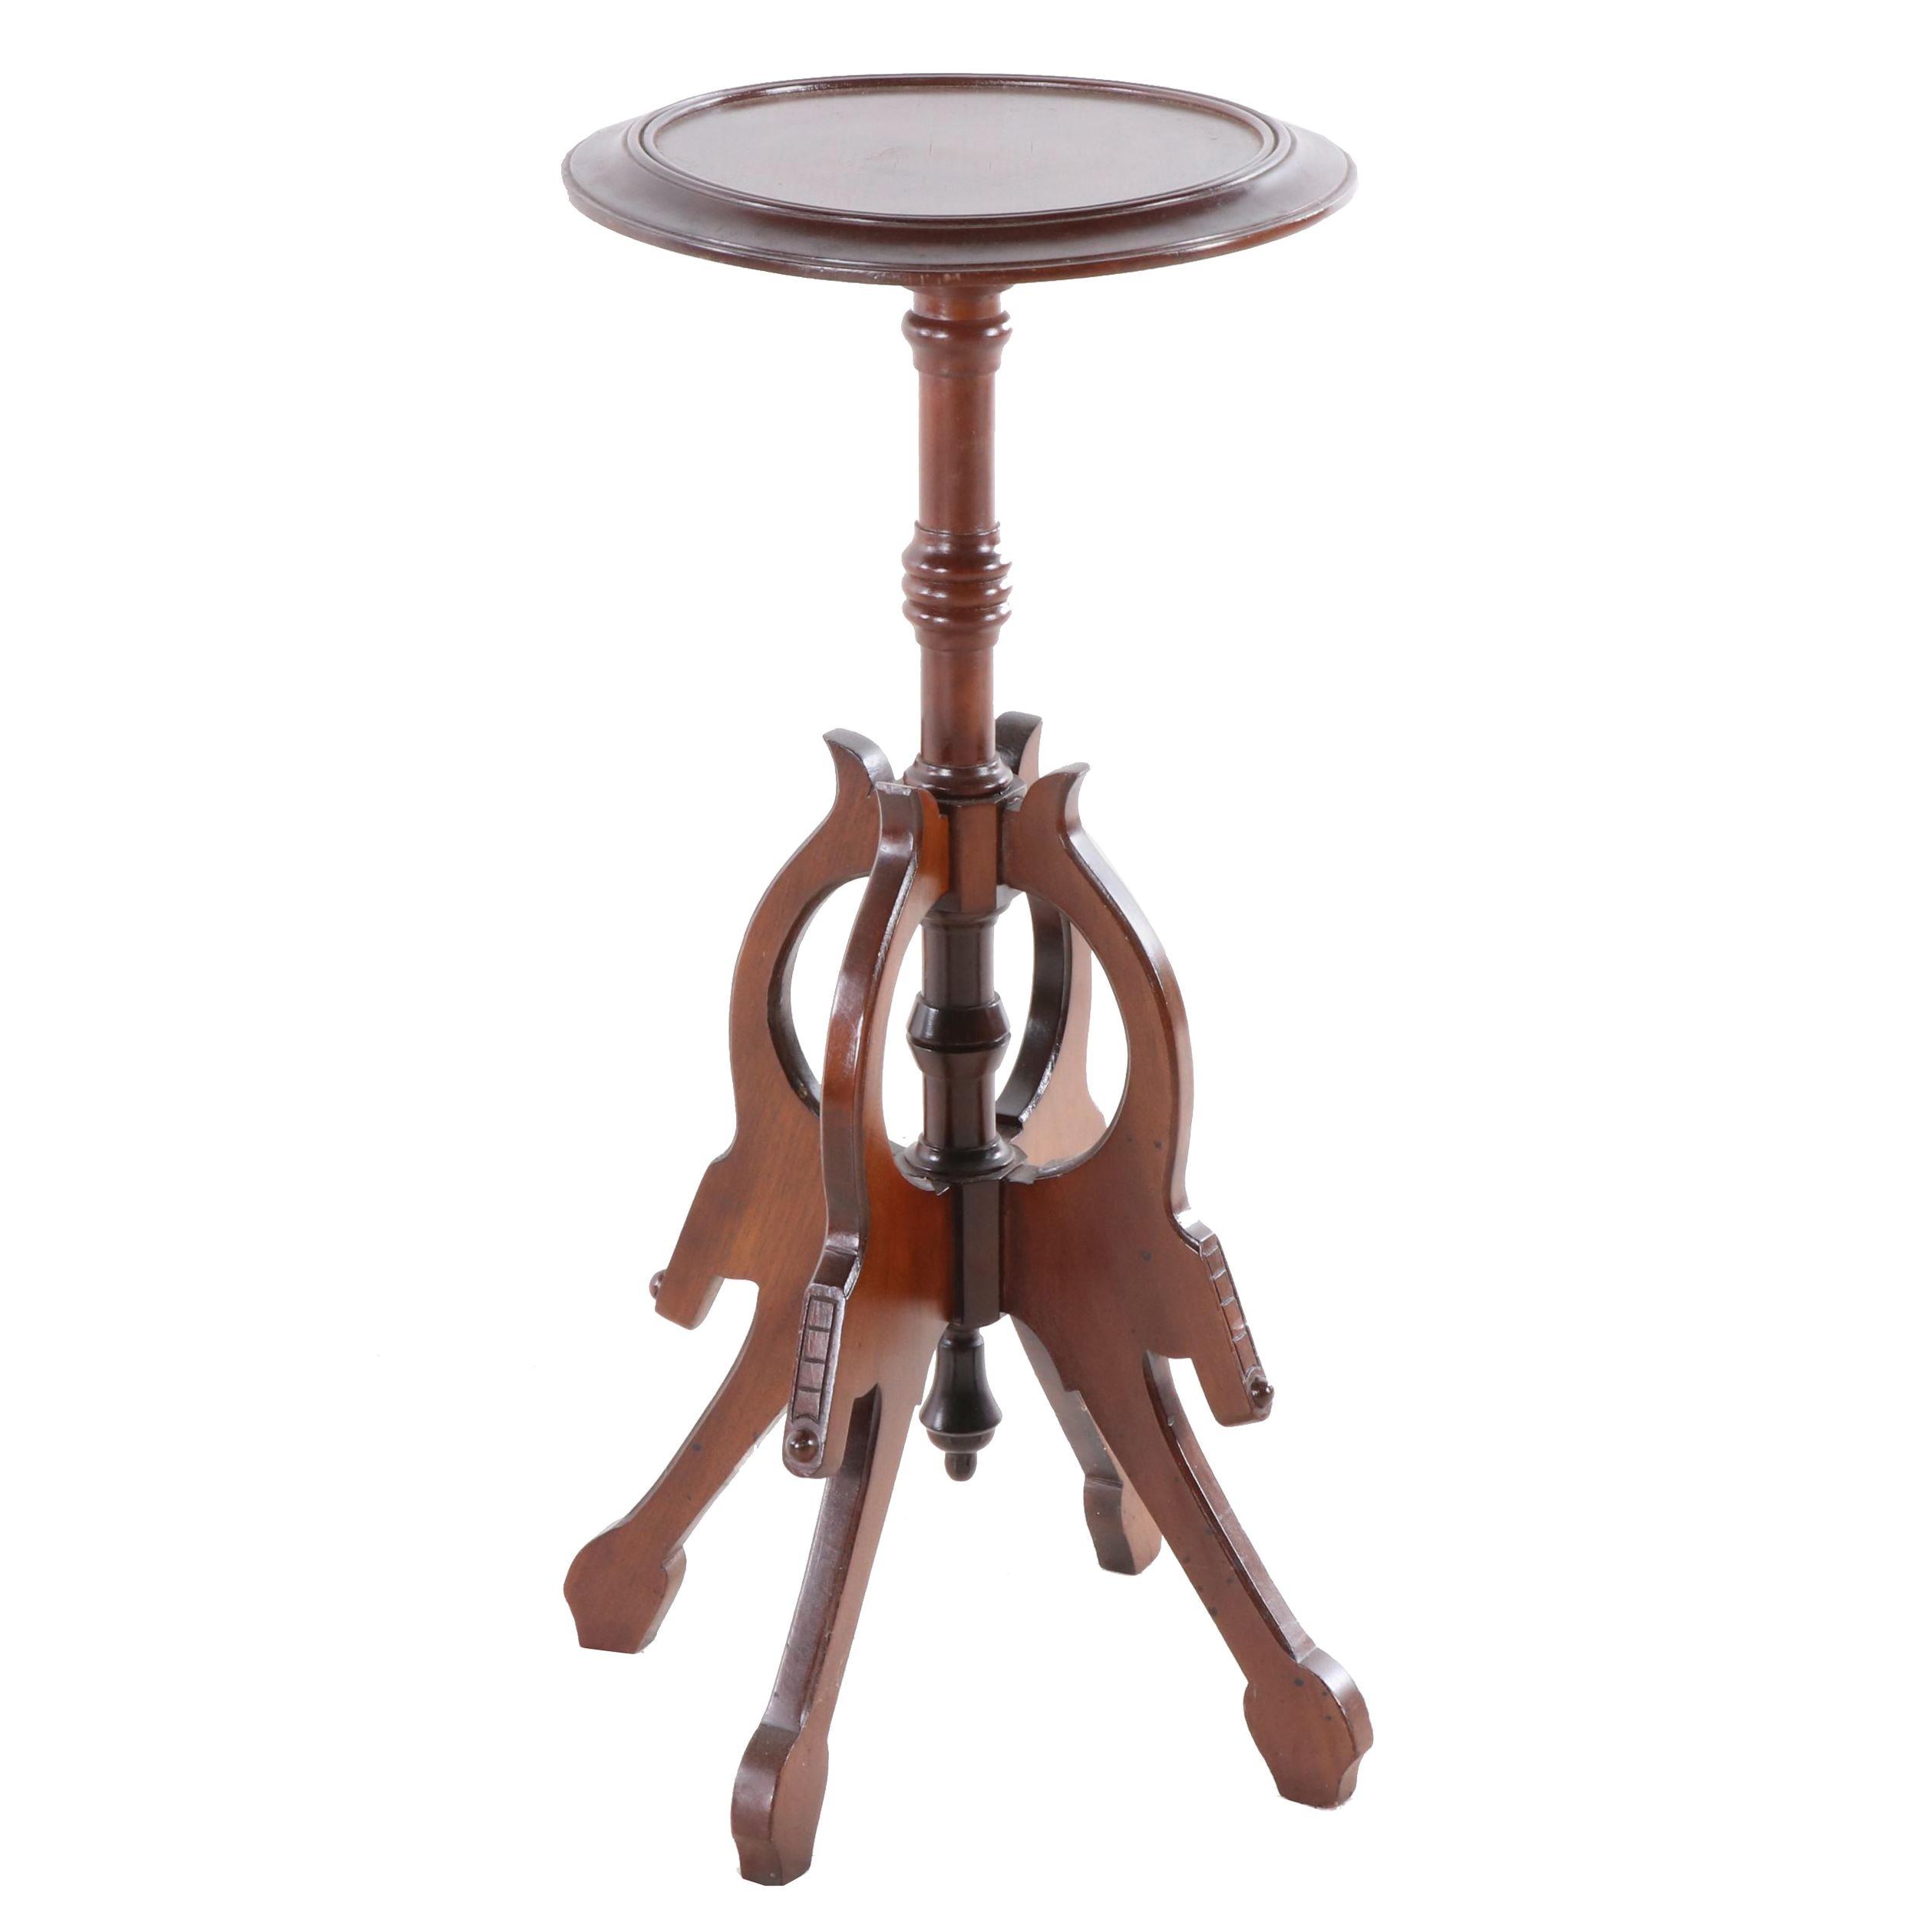 Eastlake Style Walnut-Finish Wooden Plant Stand, Early to Mid 20th Century